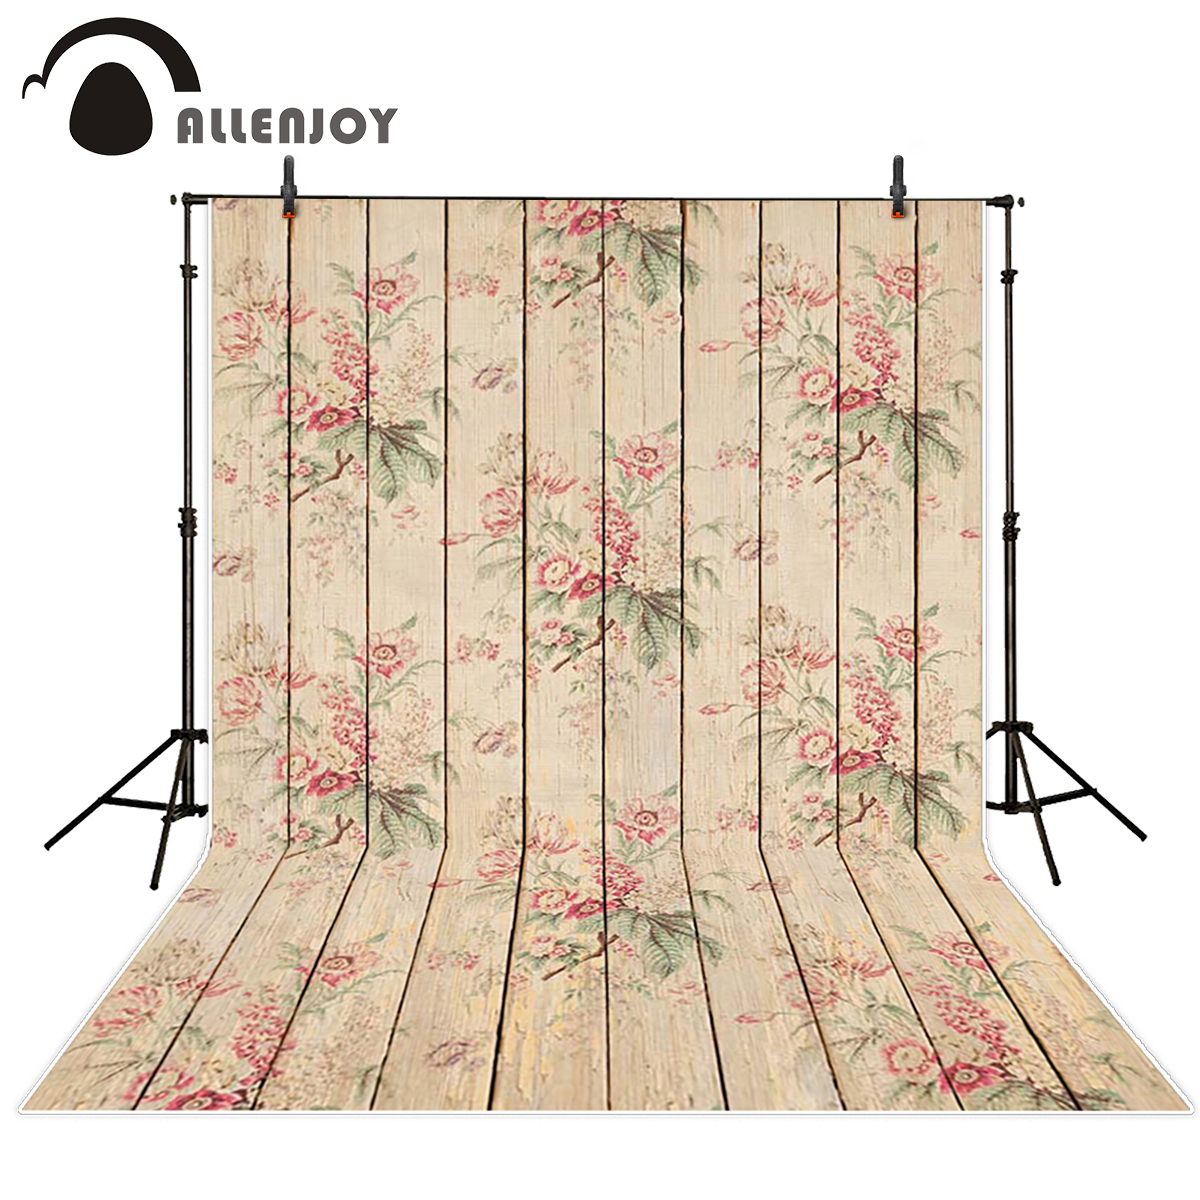 Allenjoy wood backdrop Beautiful red printed wood board Background for photo photograph Studio photo backgrounds vinyl cloth